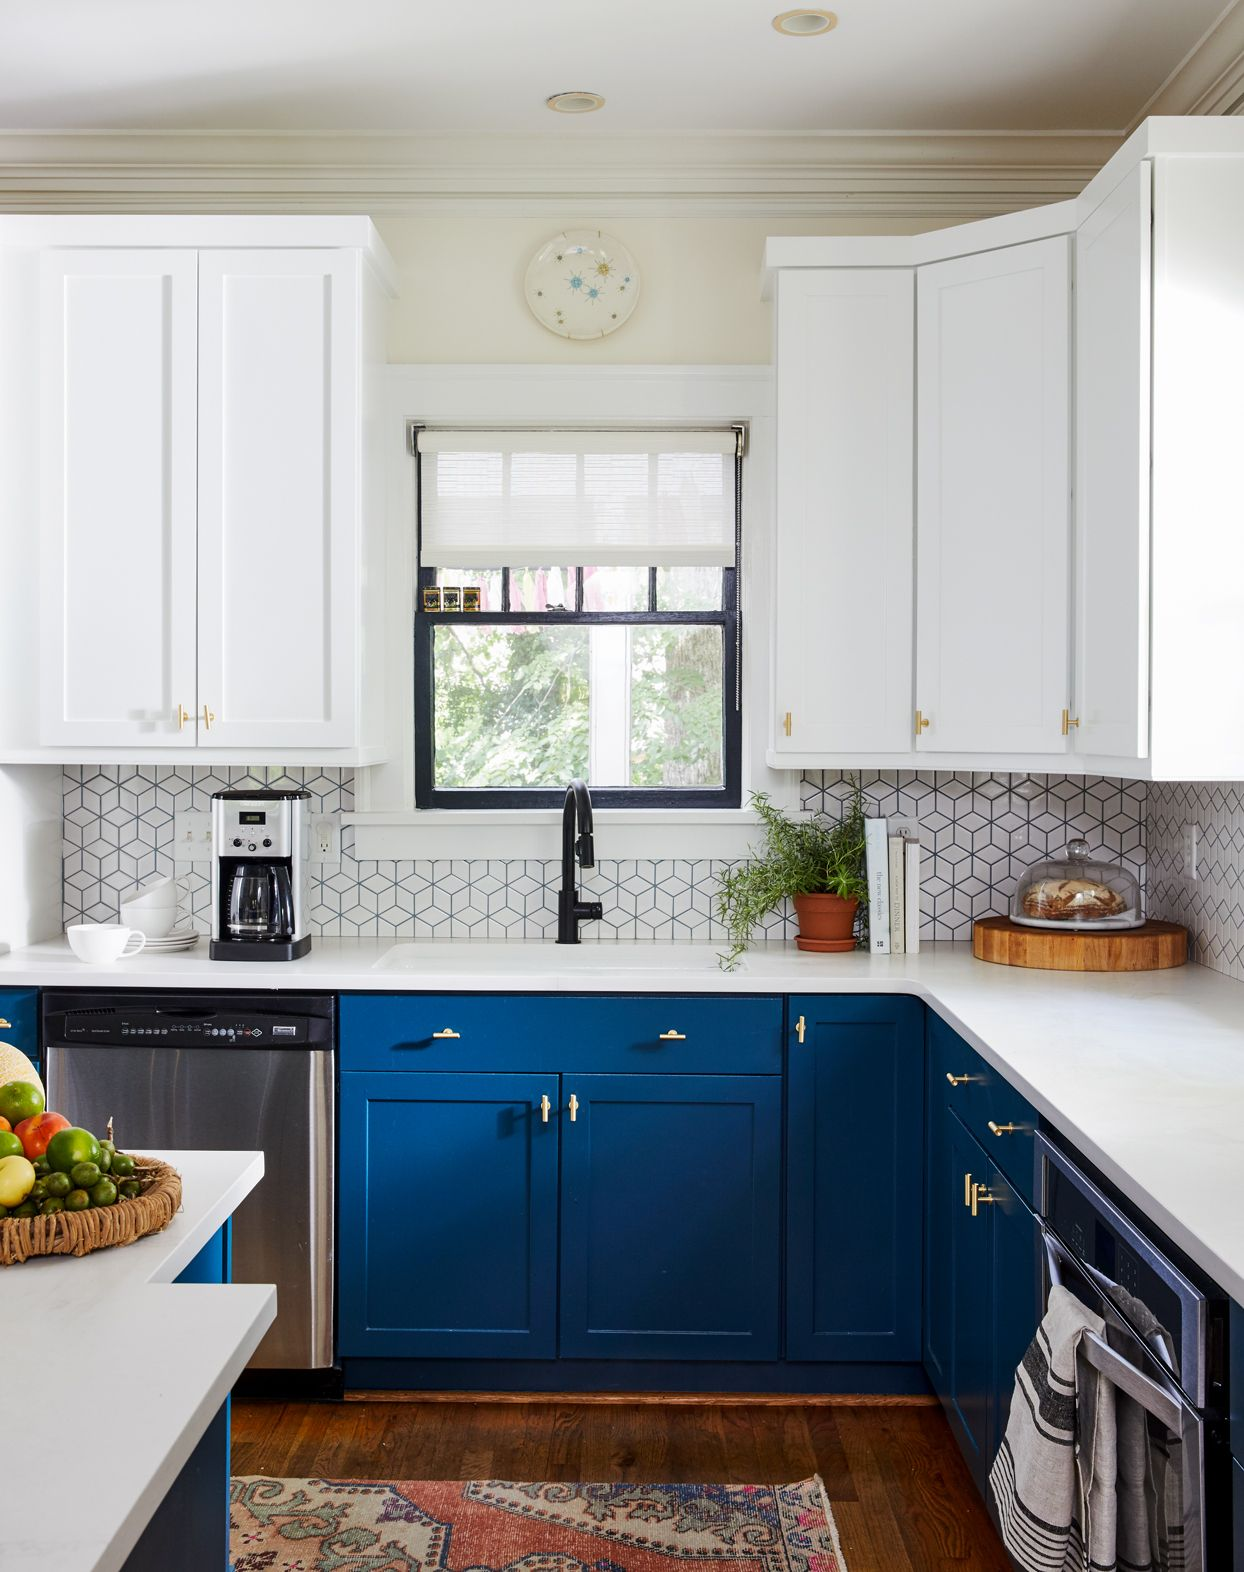 Transitional Style Is the Most Popular Kitchen Design—Here ...